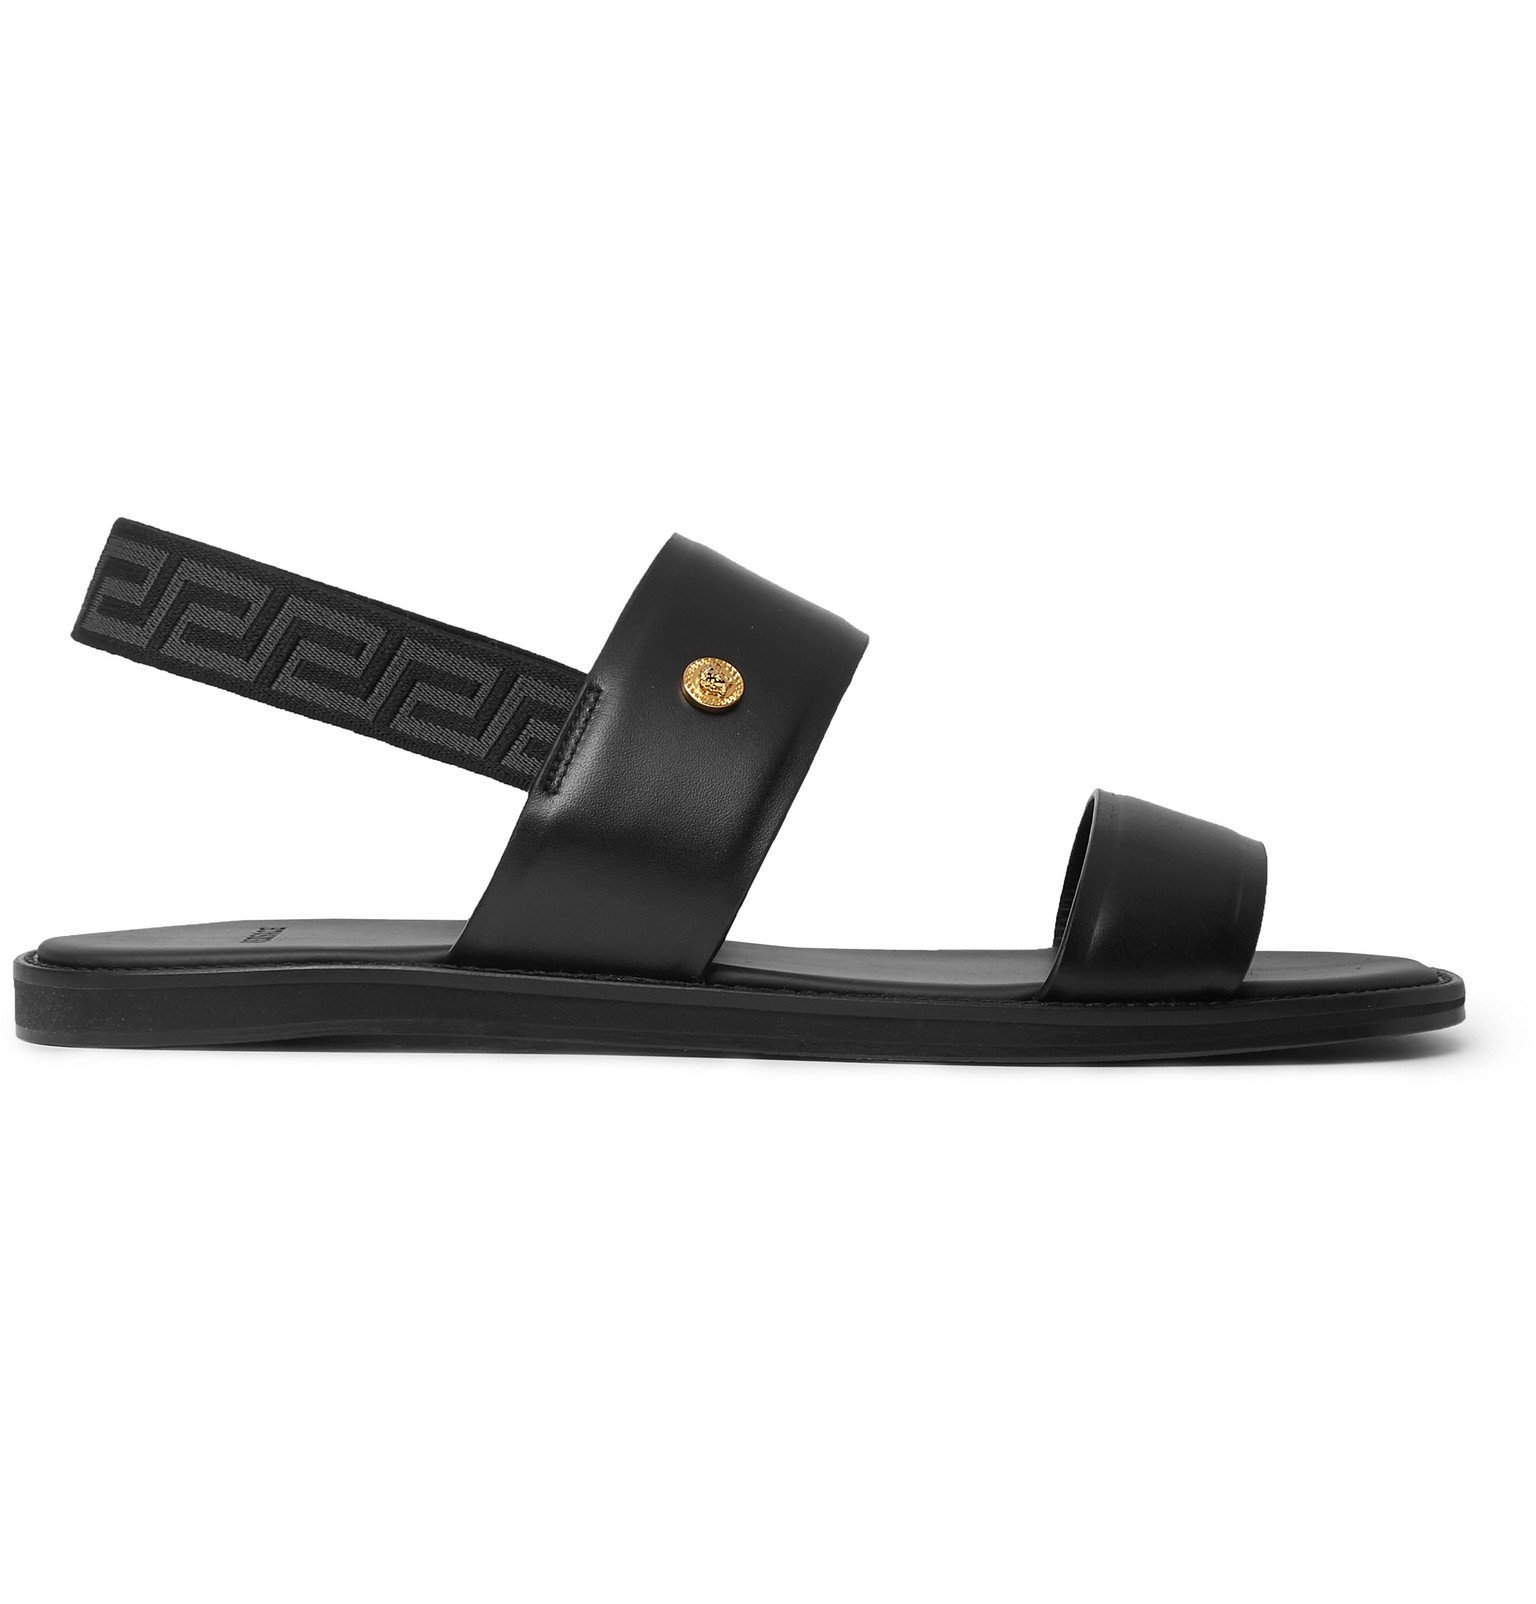 Versace - Appliquéd Leather Sandals - Black